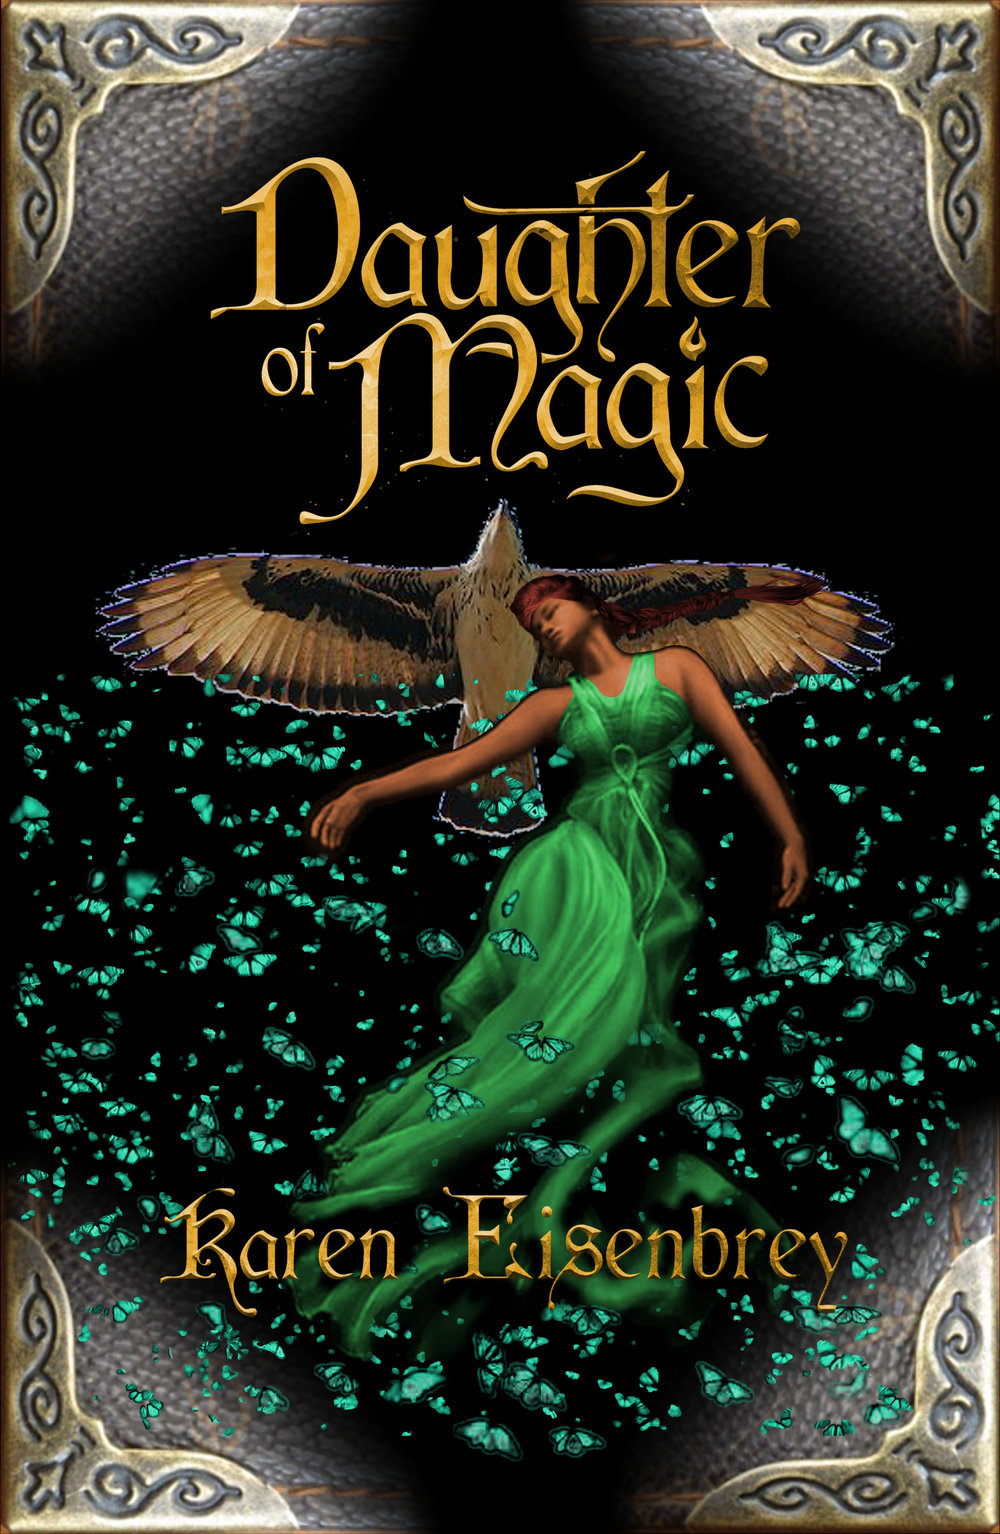 Daughter of Magic eBook Cover edit 1.jpg